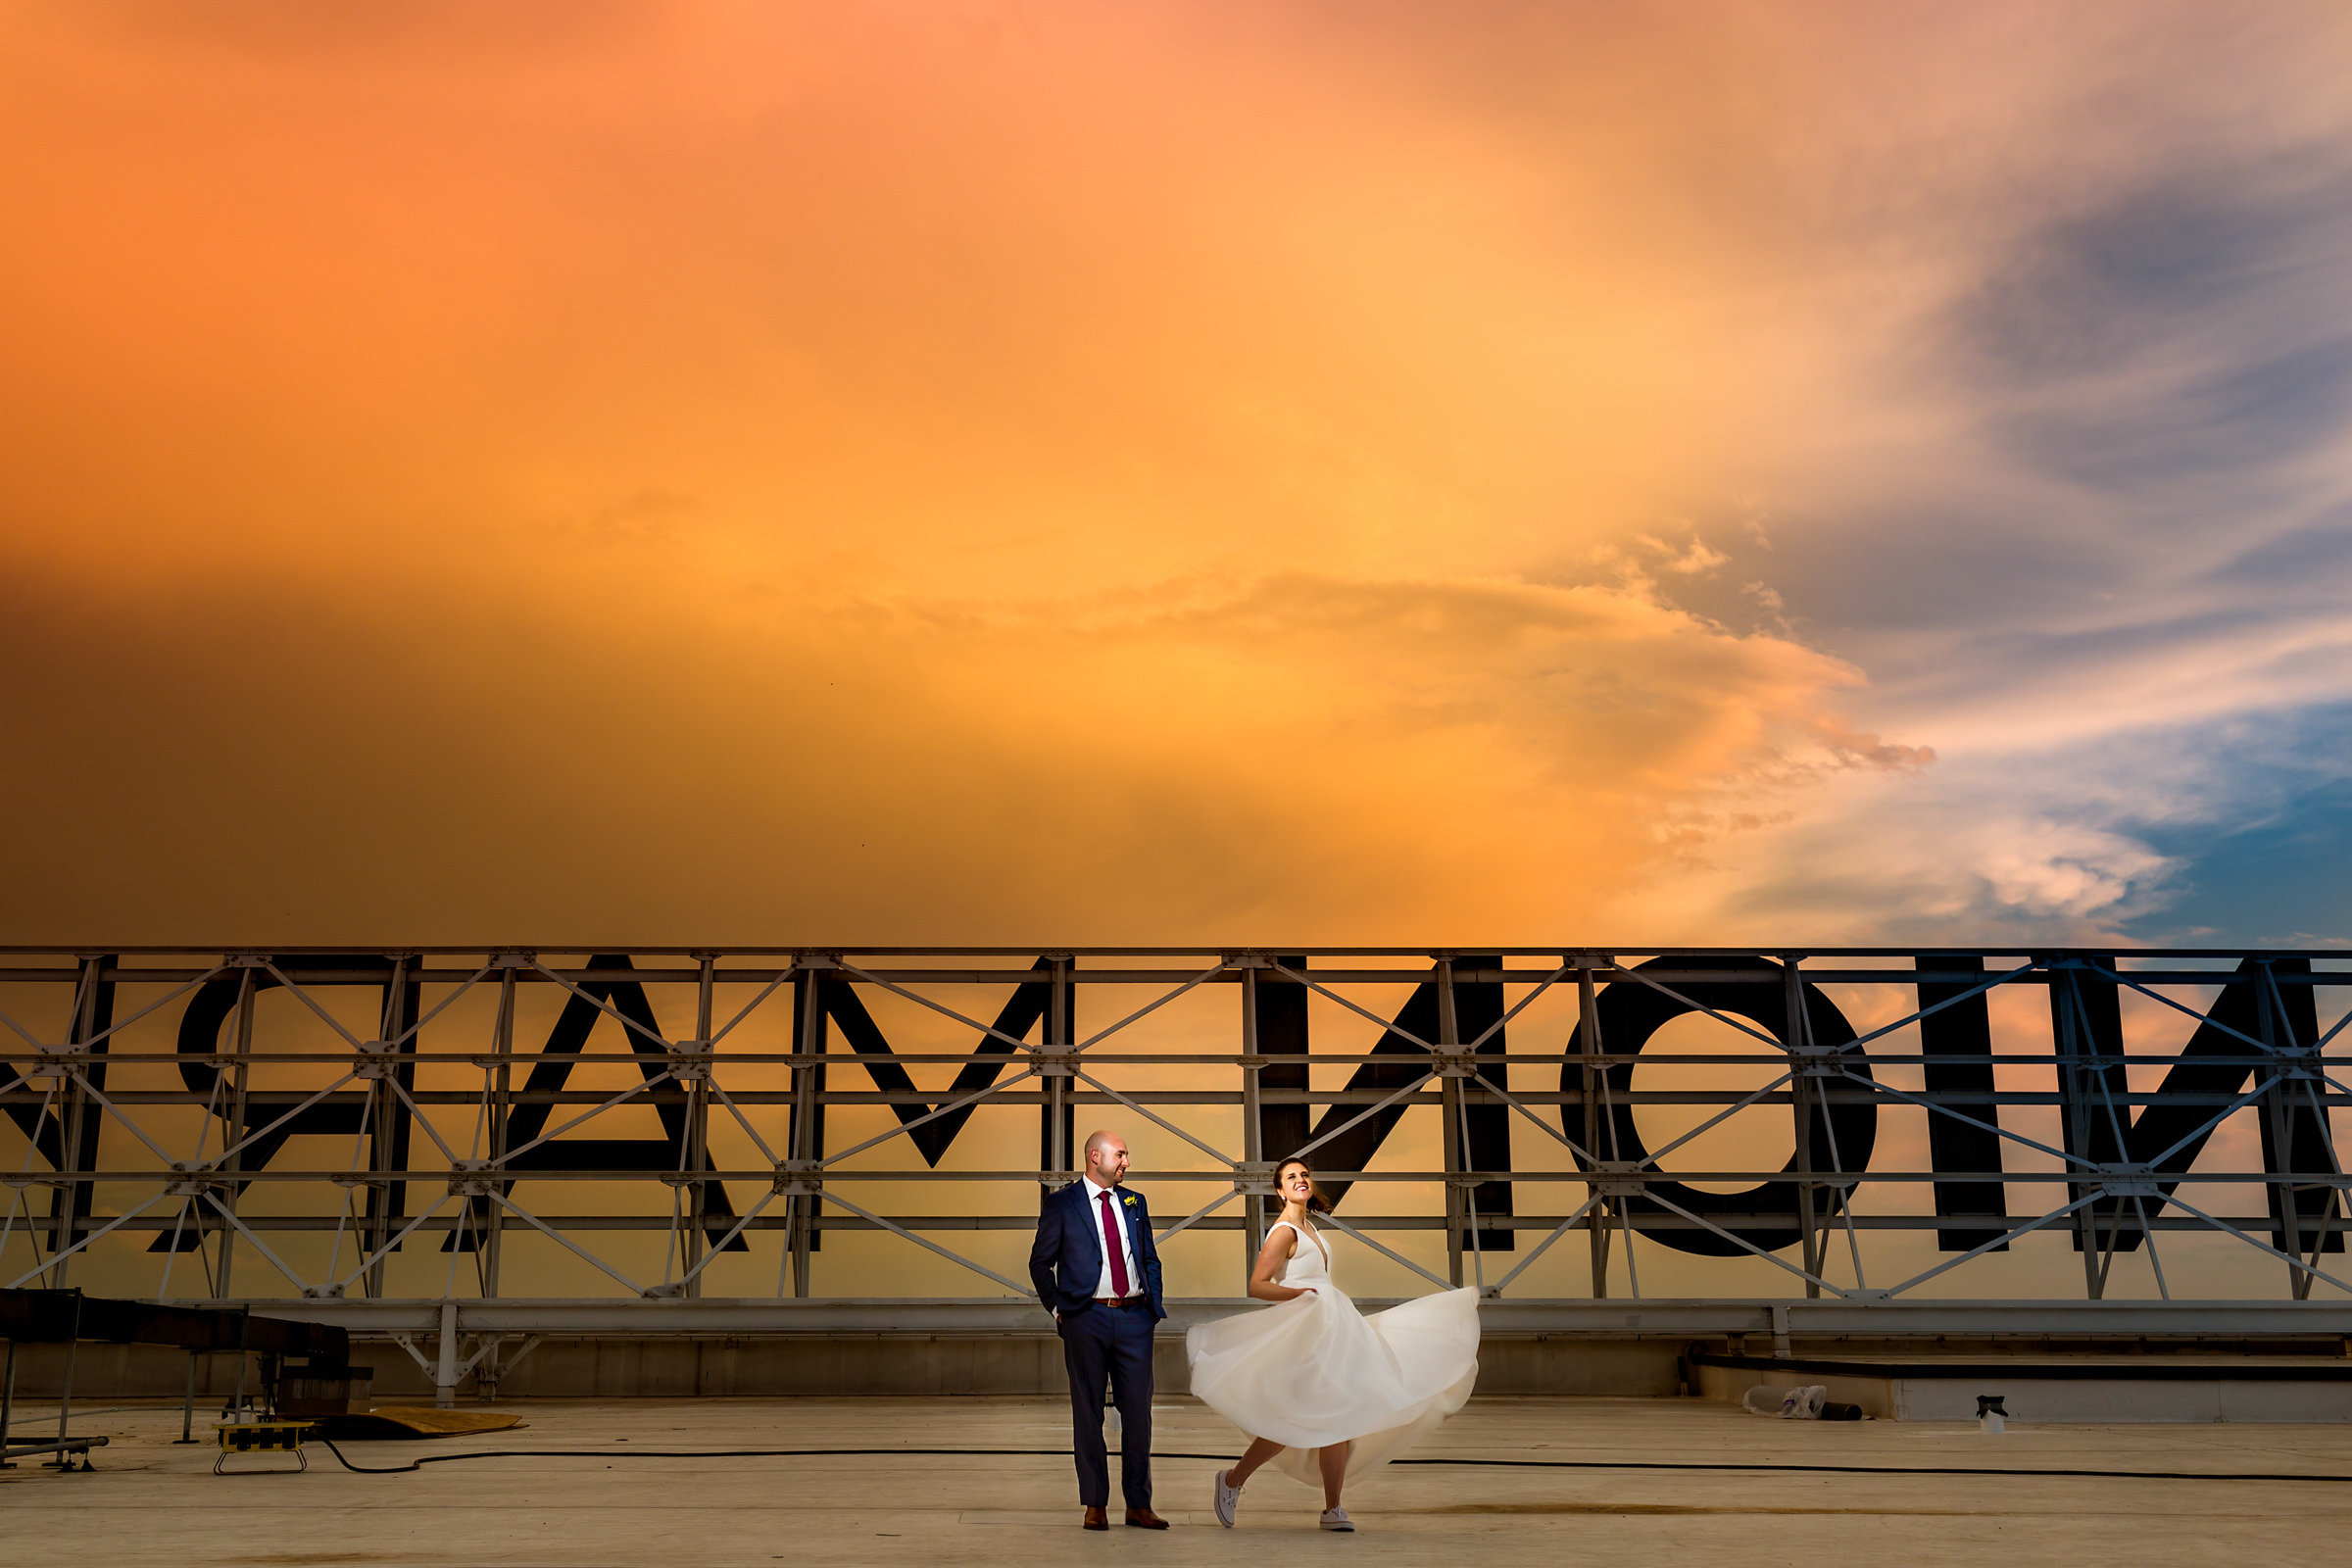 Couple against epic sunset sky and large lettering - photo by Procopio Photography